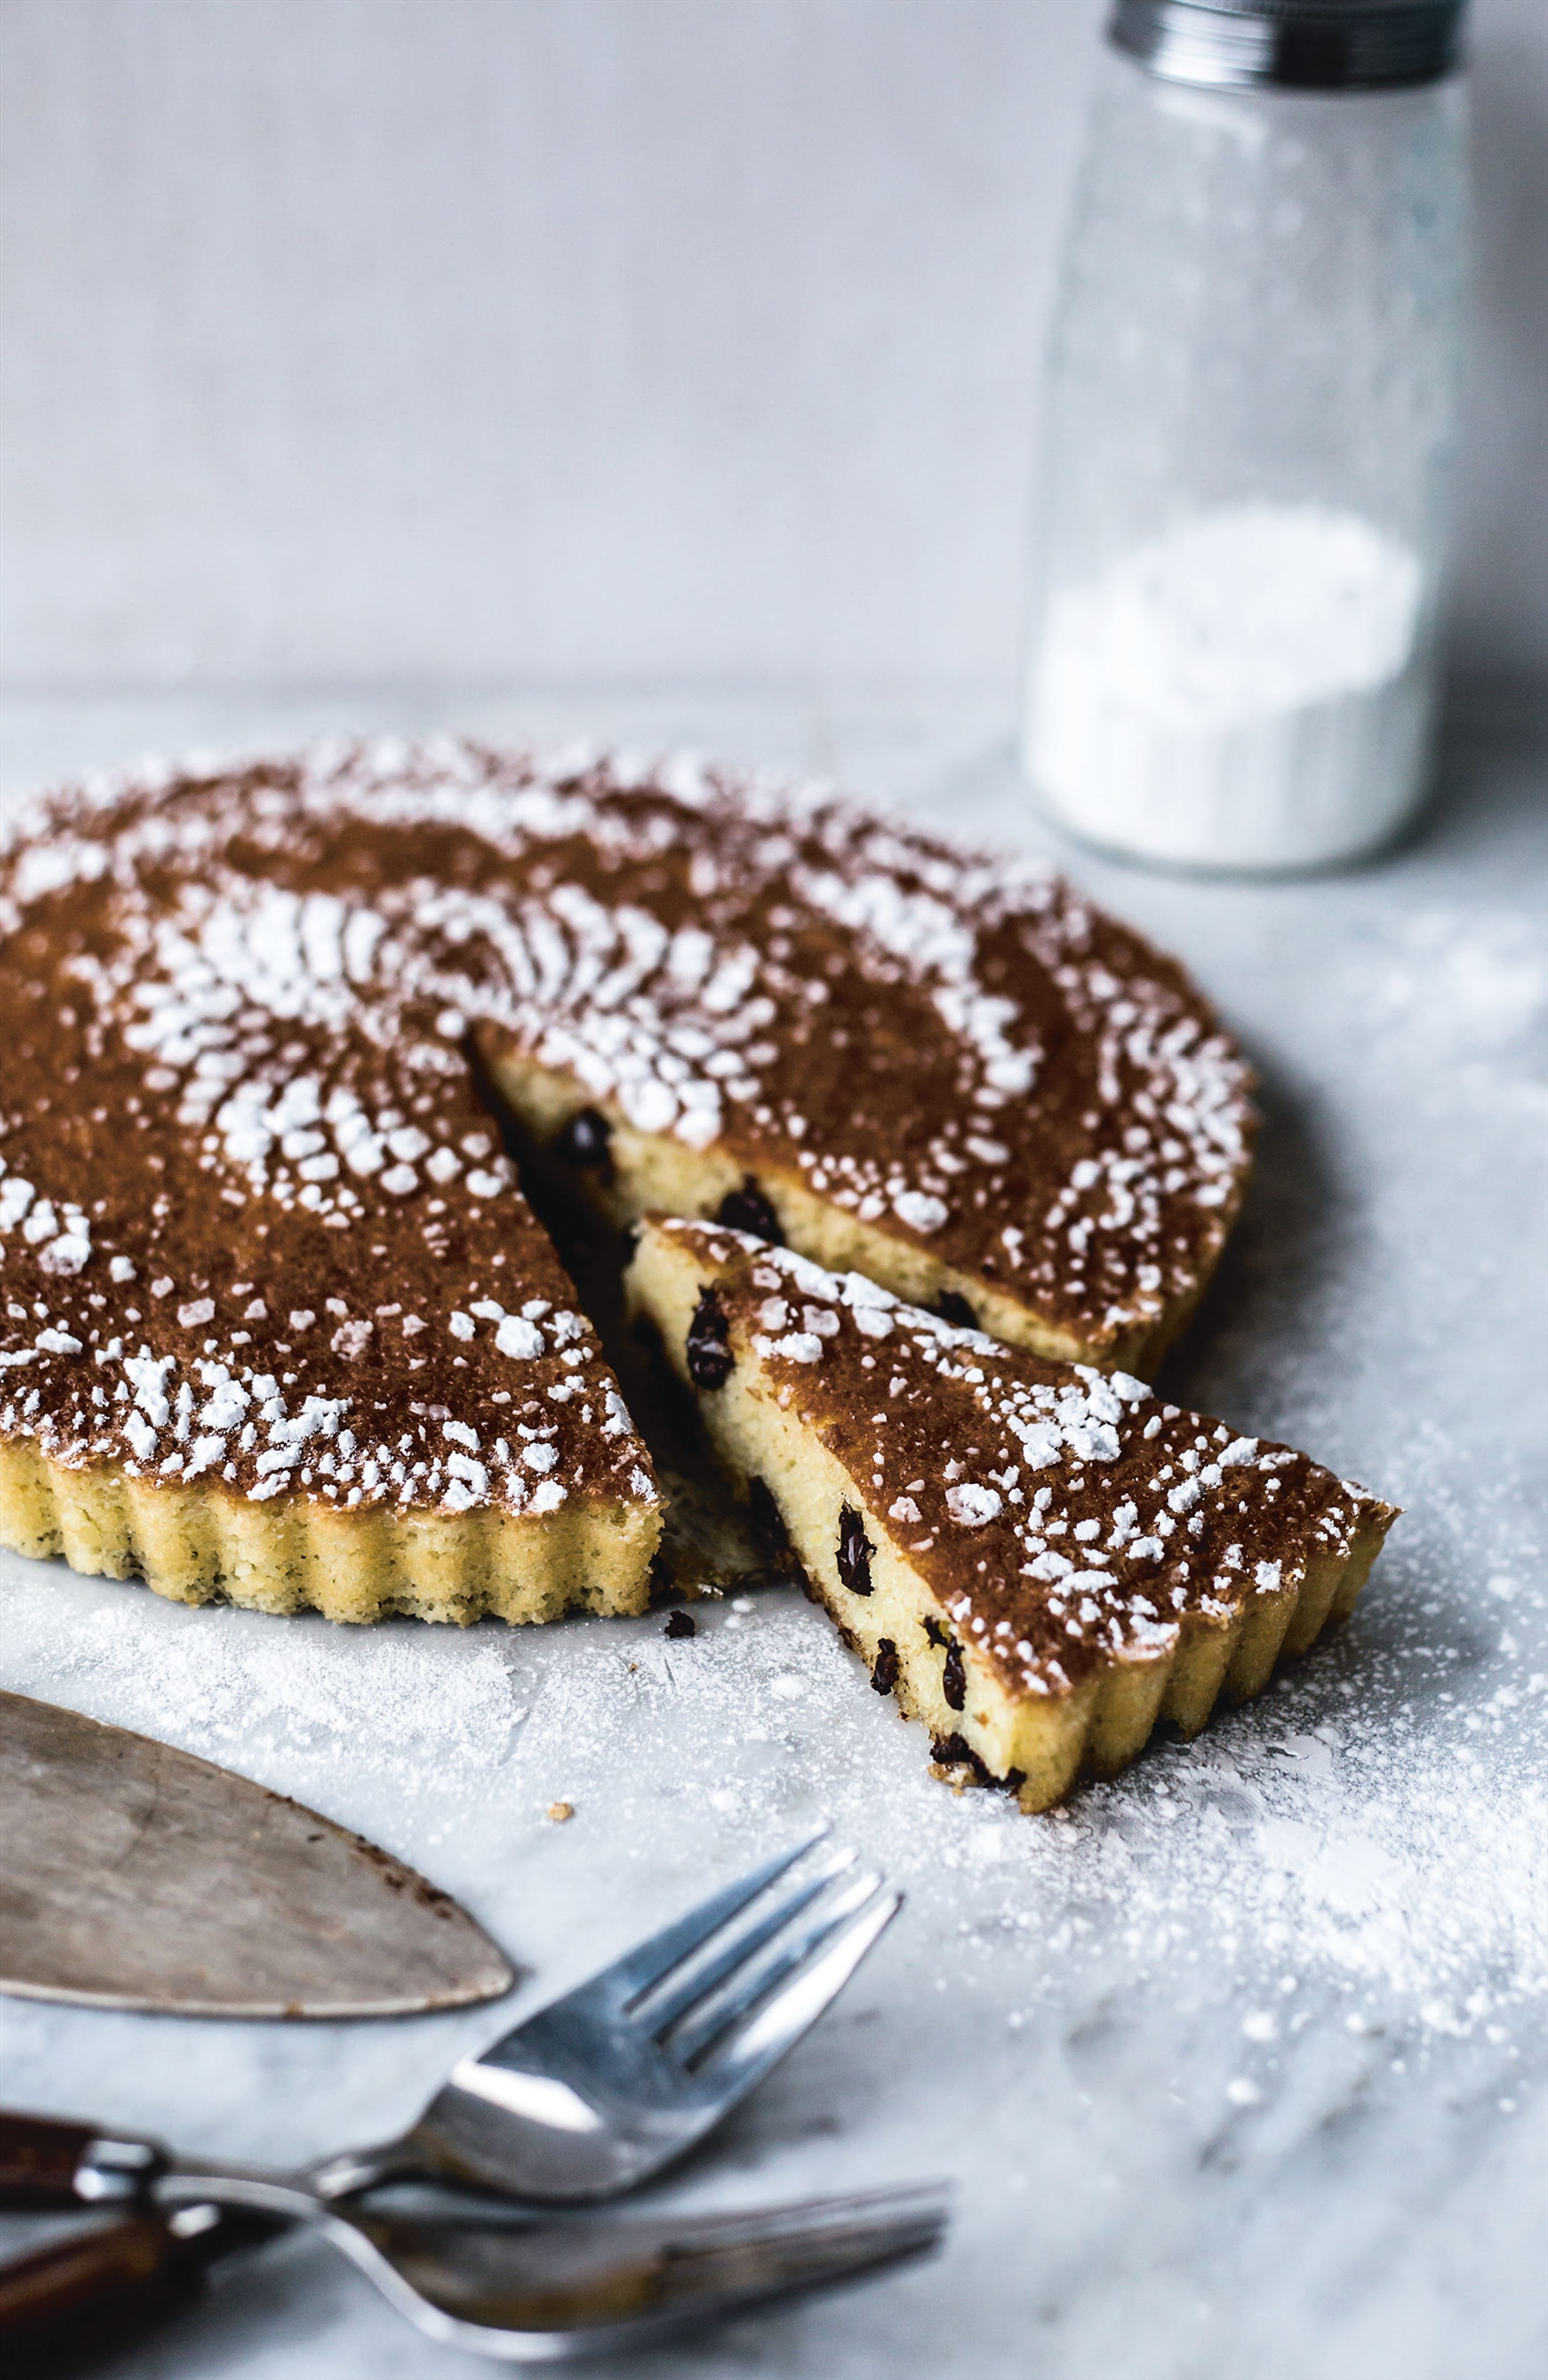 Chocolate chip amaretto torte